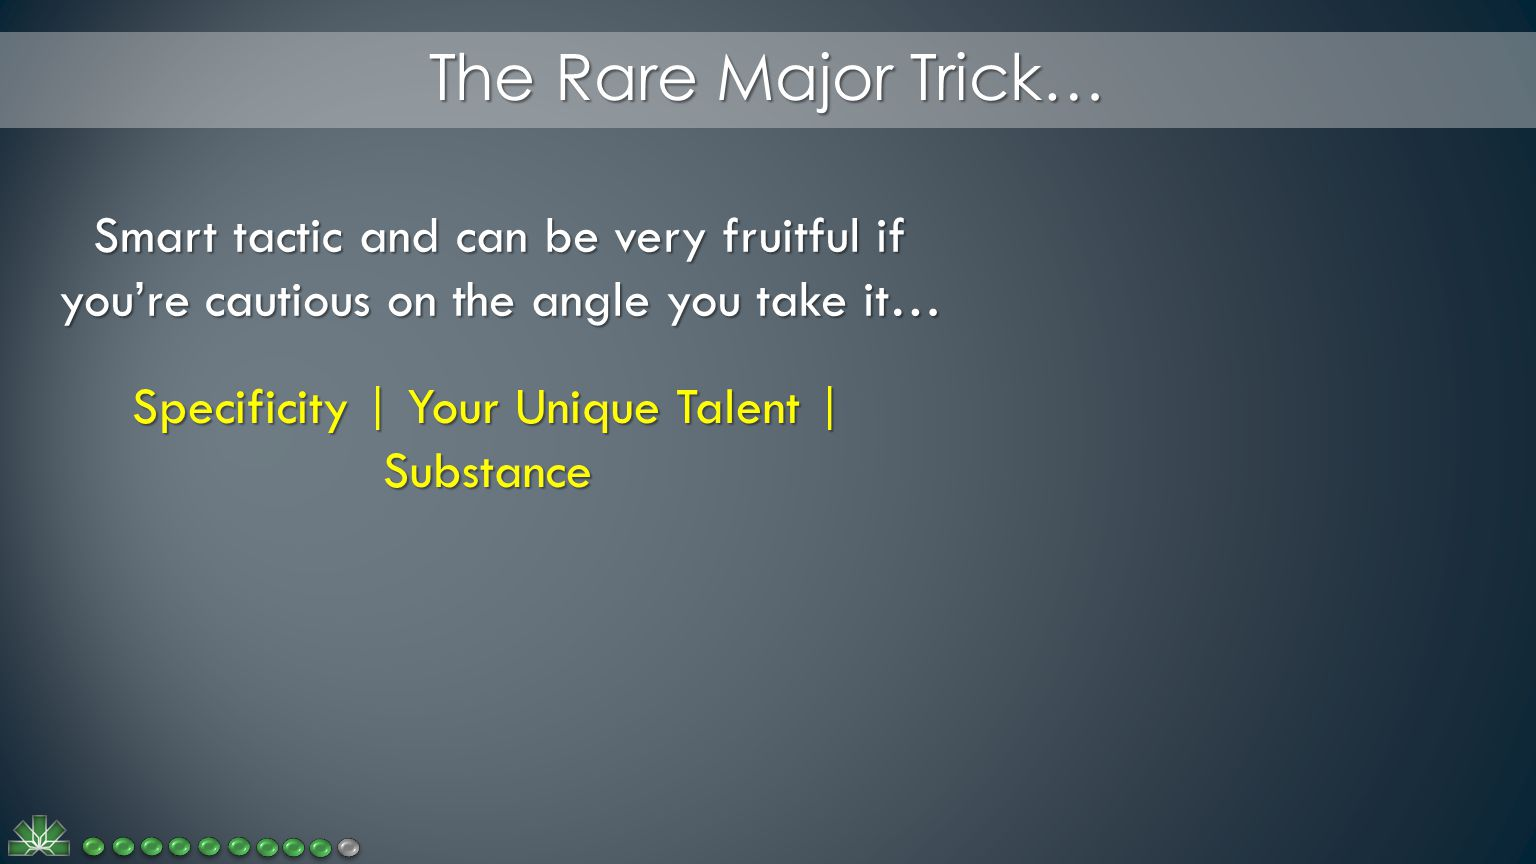 The Rare Major Trick… Smart tactic and can be very fruitful if you're cautious on the angle you take it… Specificity | Your Unique Talent | Substance